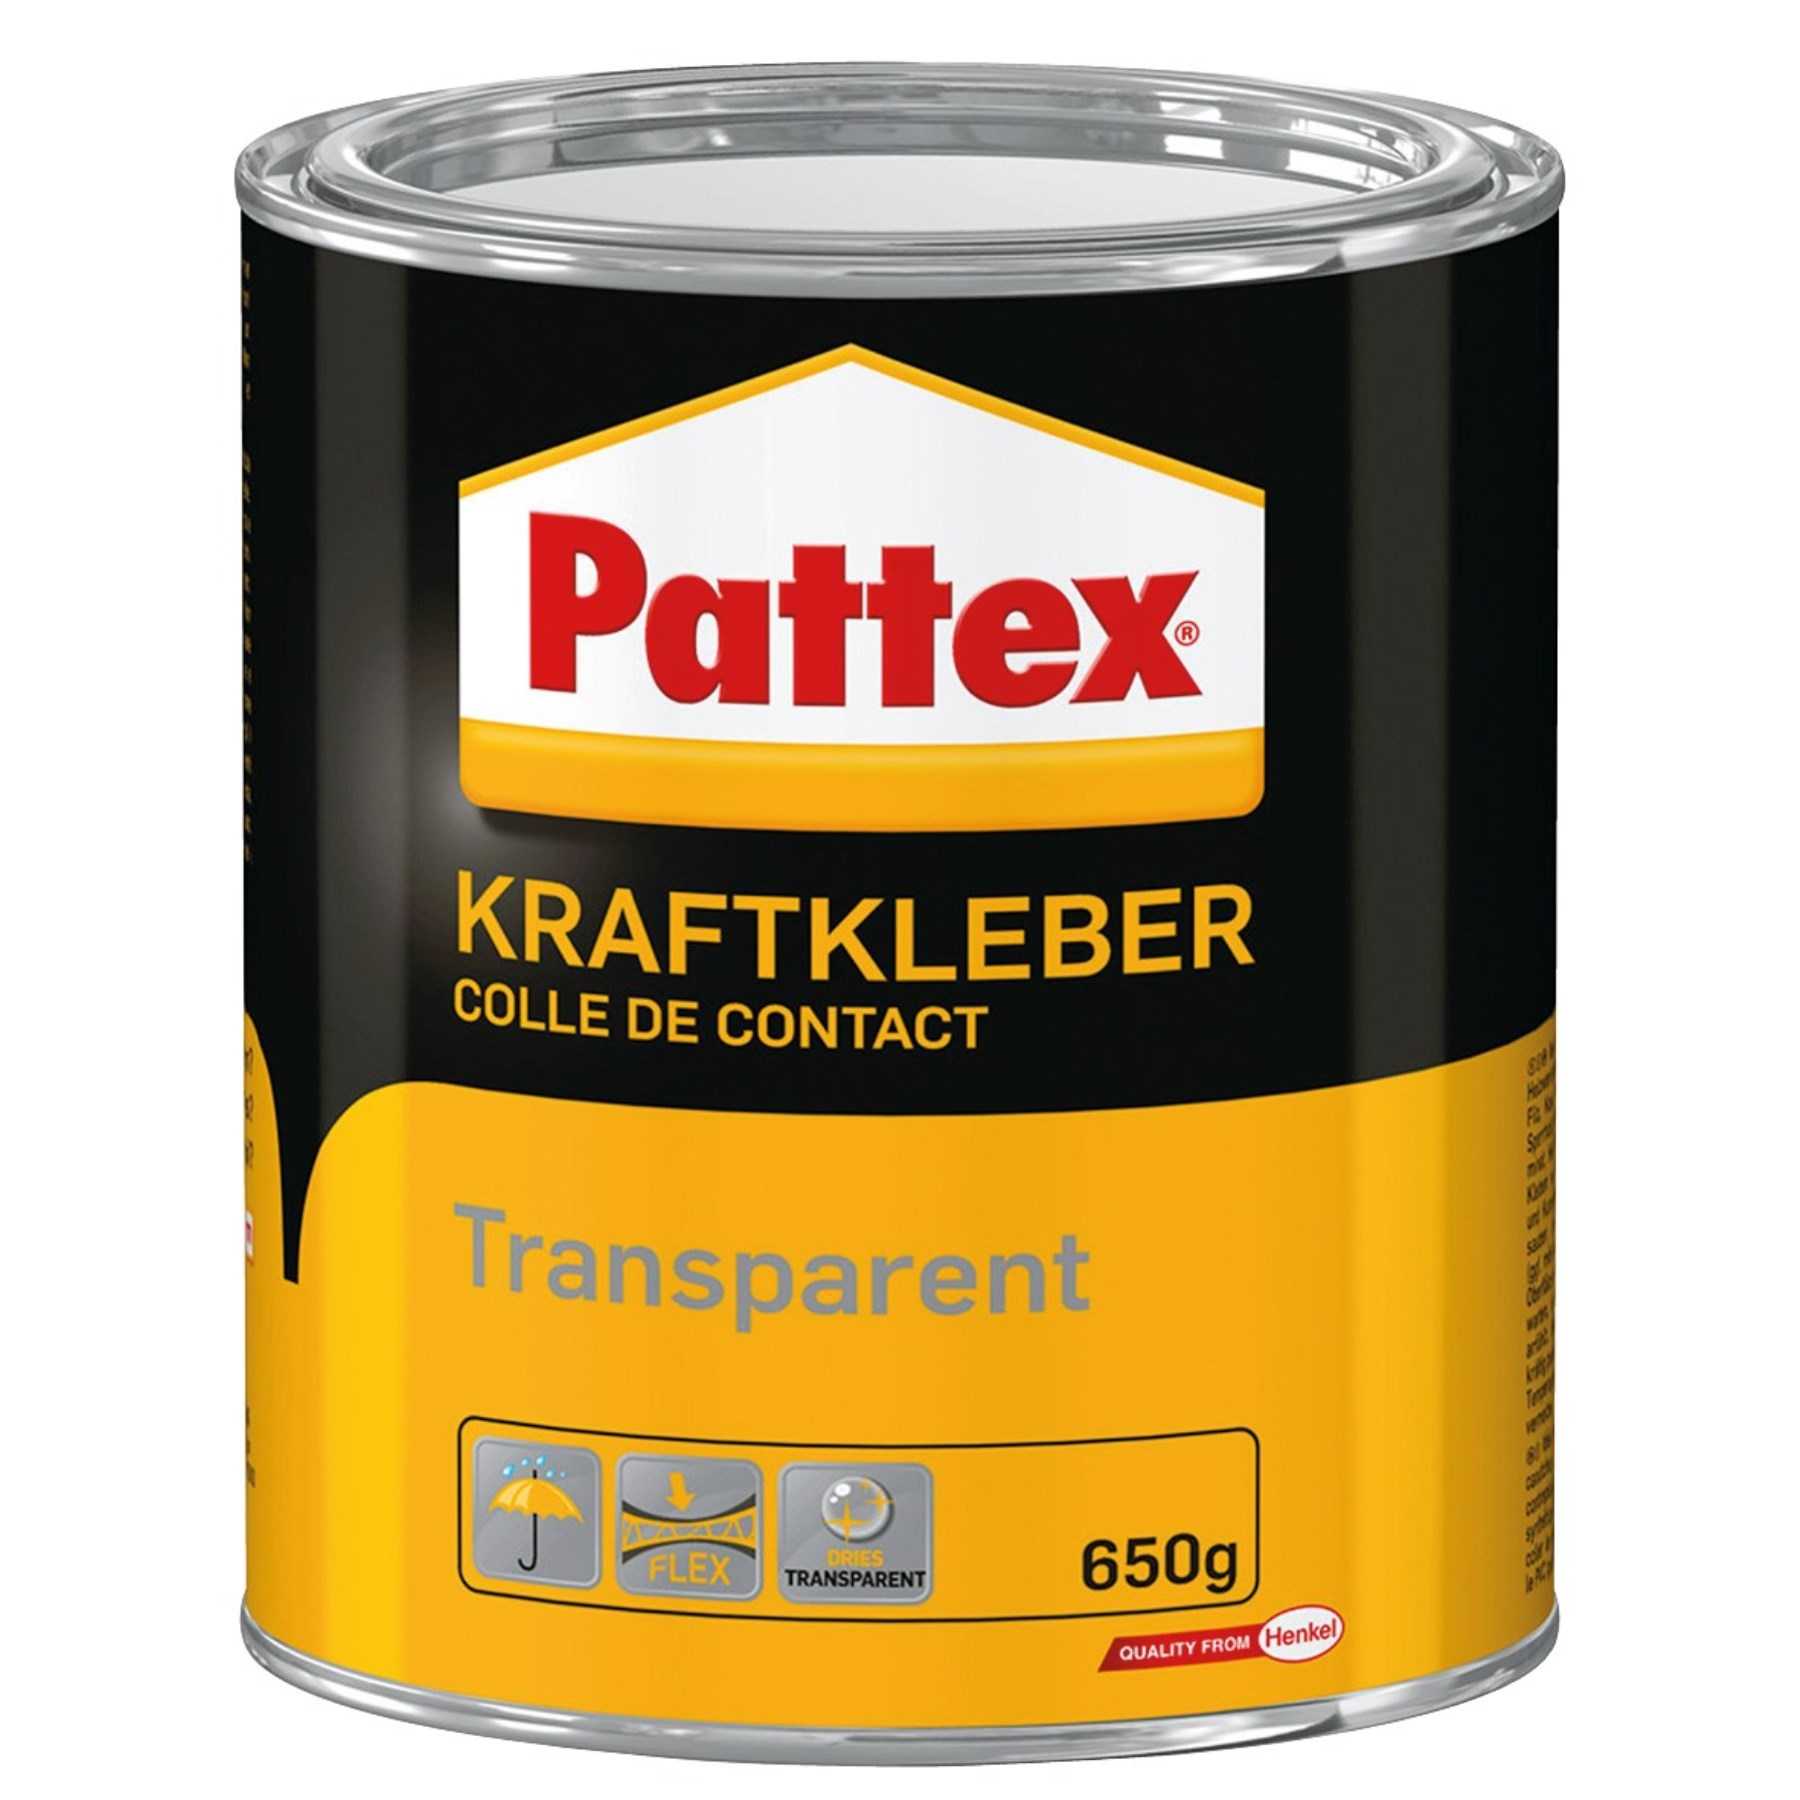 1225894 - Kraftkleber transparent